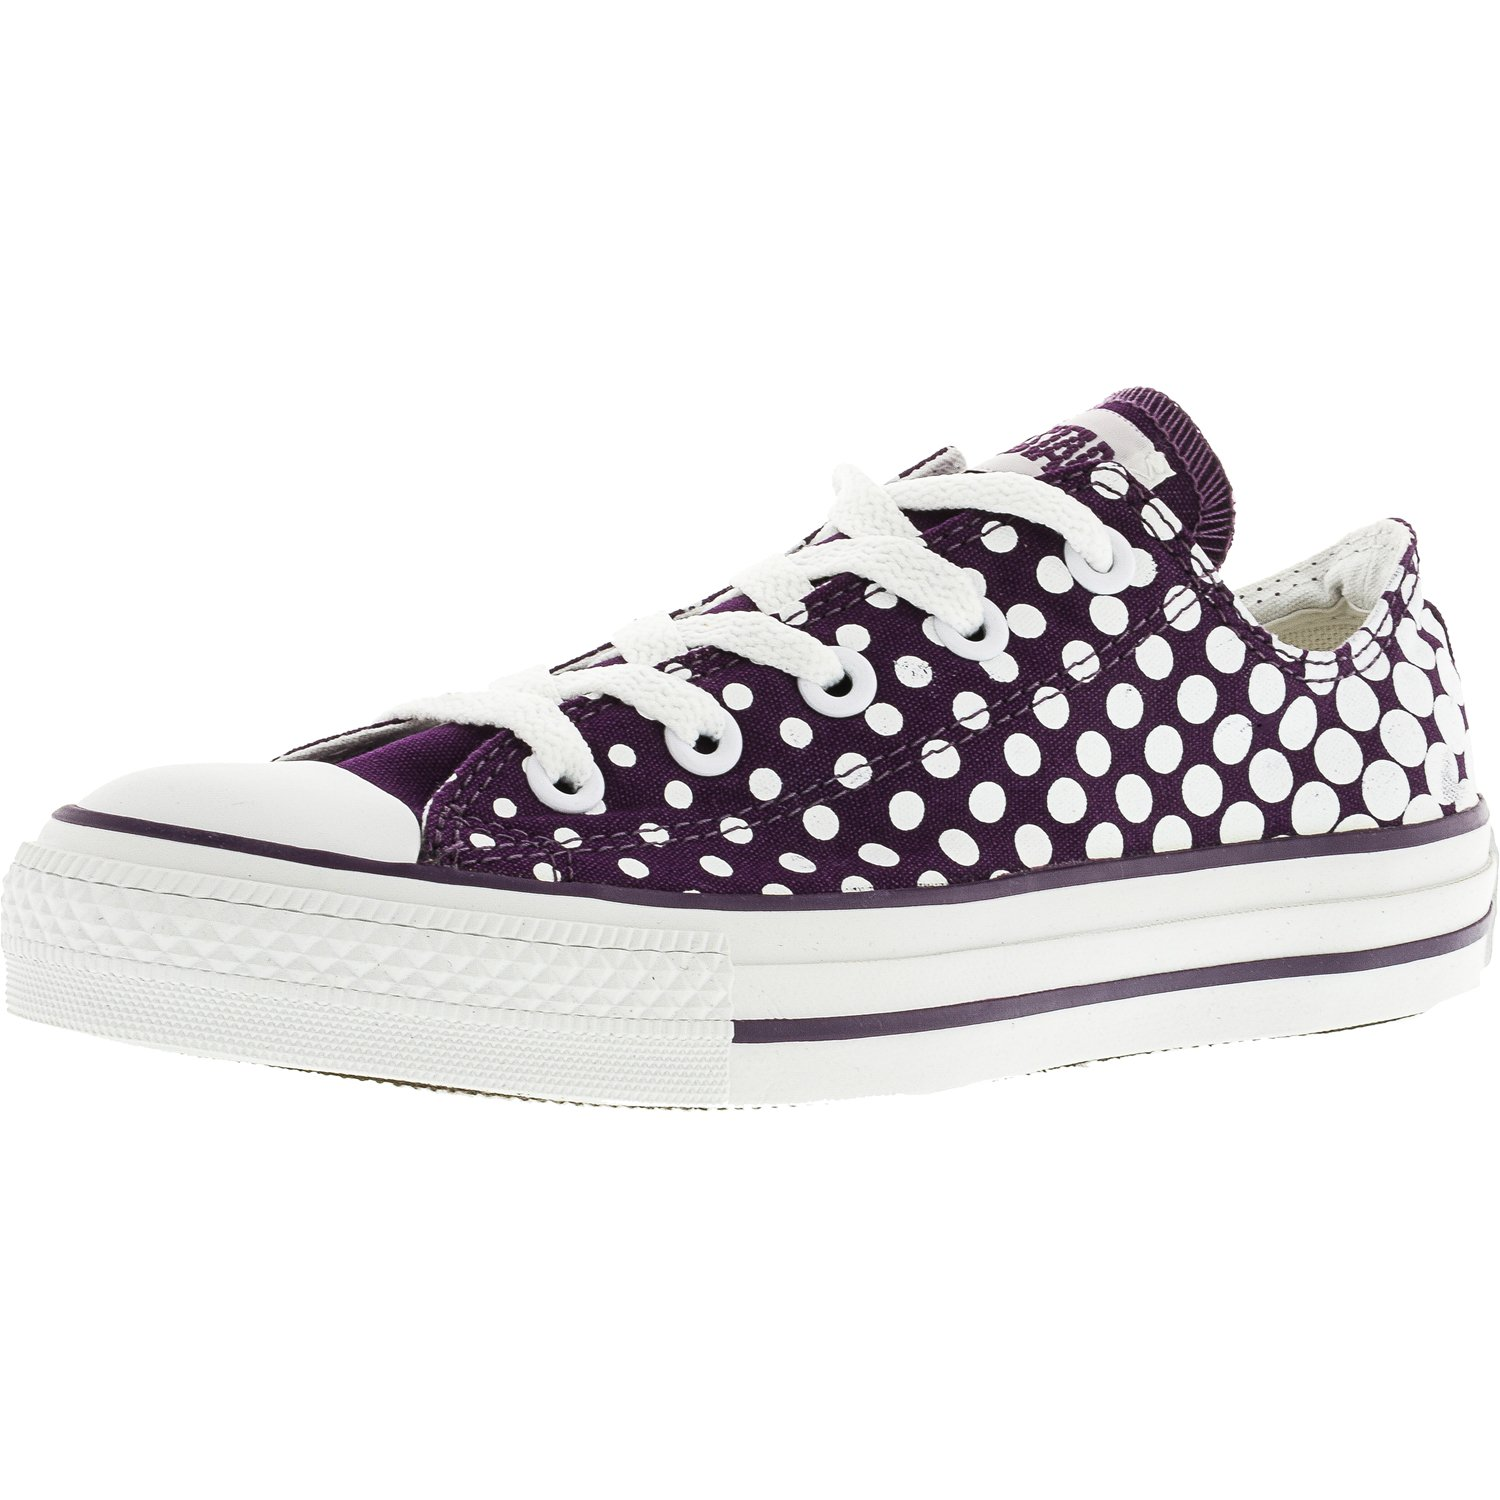 Converse Chuck Taylor All Star Dots Shadow Purple Ankle-High Canvas Fashion Sneaker - 7M / 5M